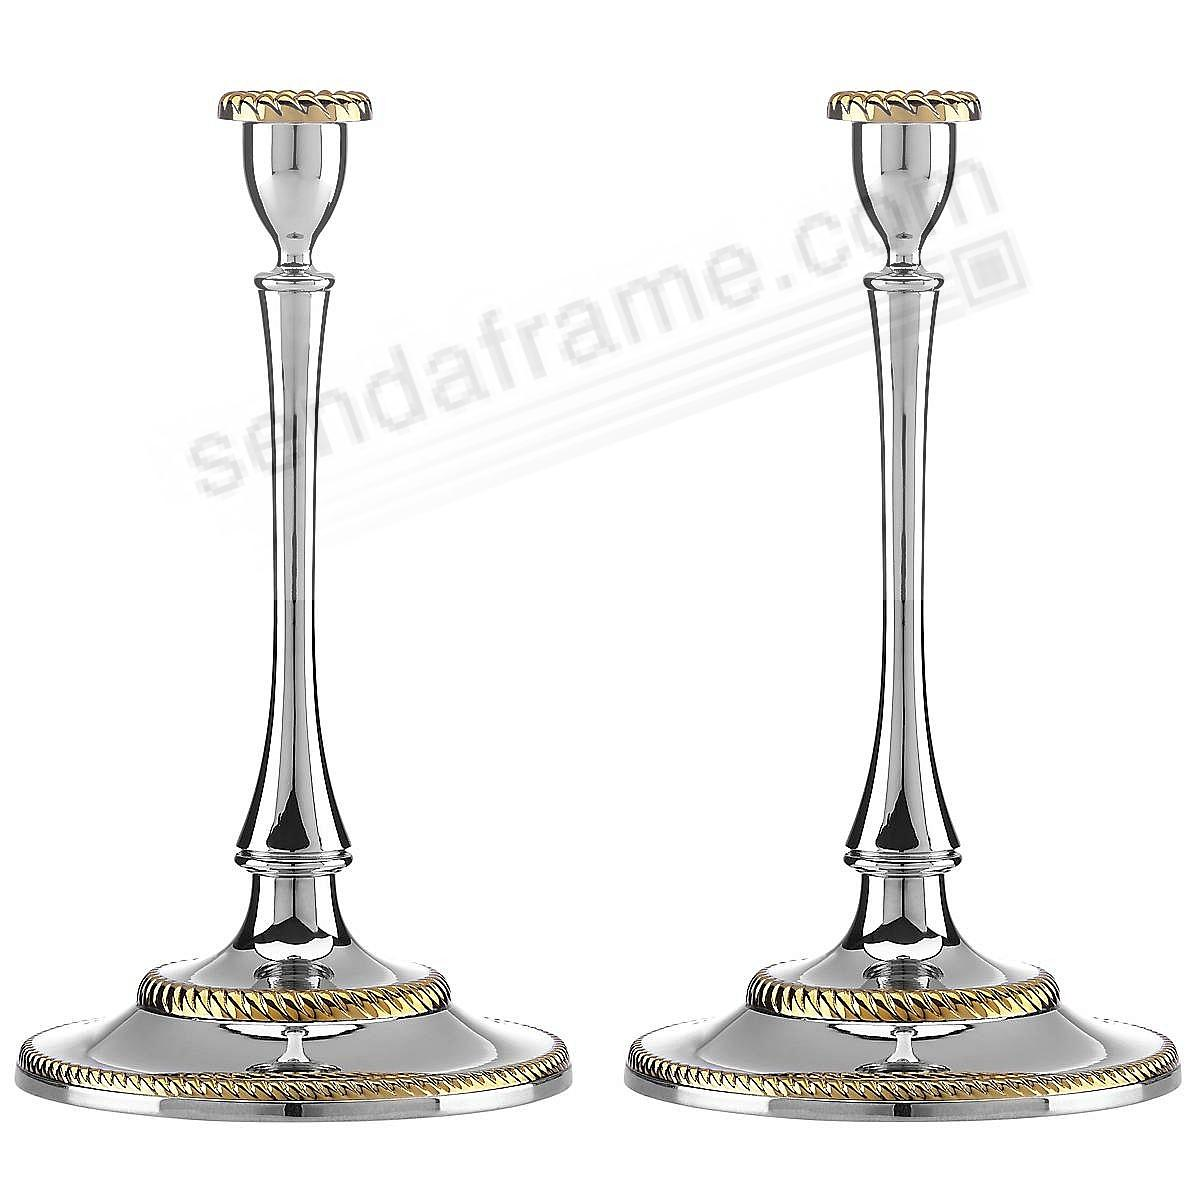 The ROSELAND CANDLESTICK (PAIR) by Reed and Barton®